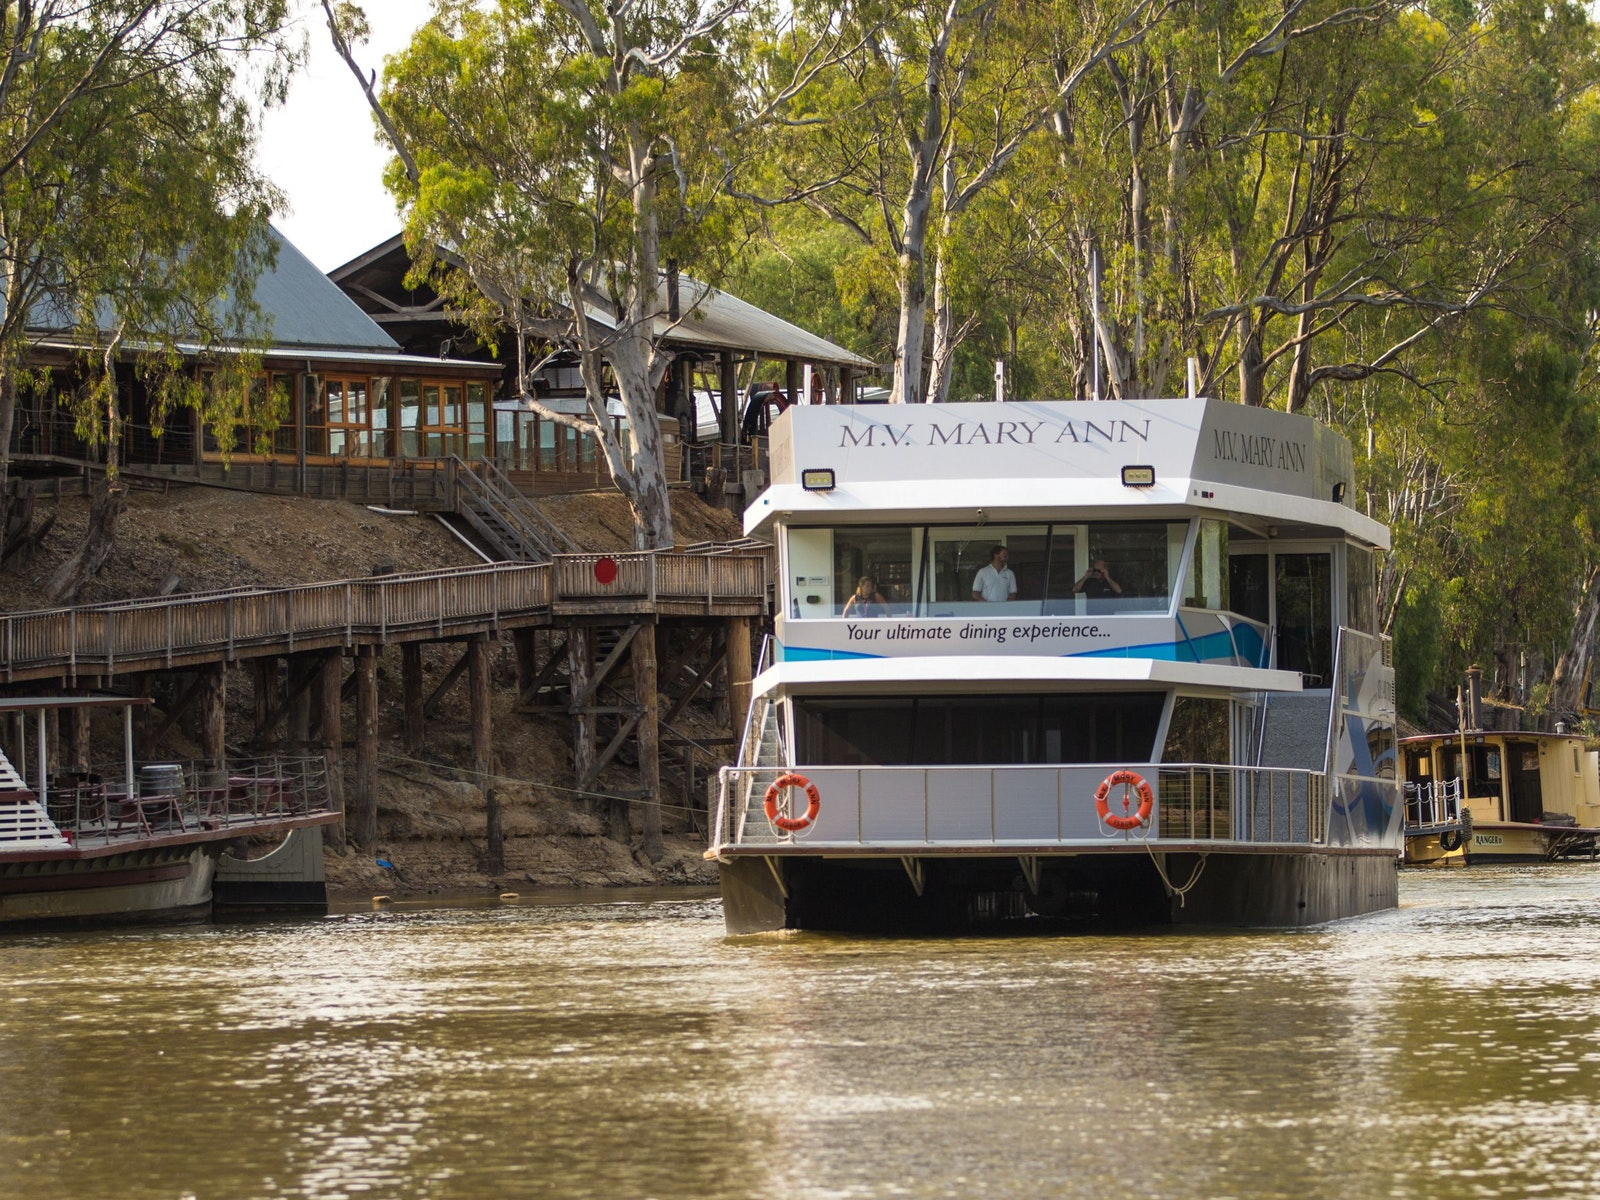 Passing by the Echuca Wharf at The Port of Echuca.